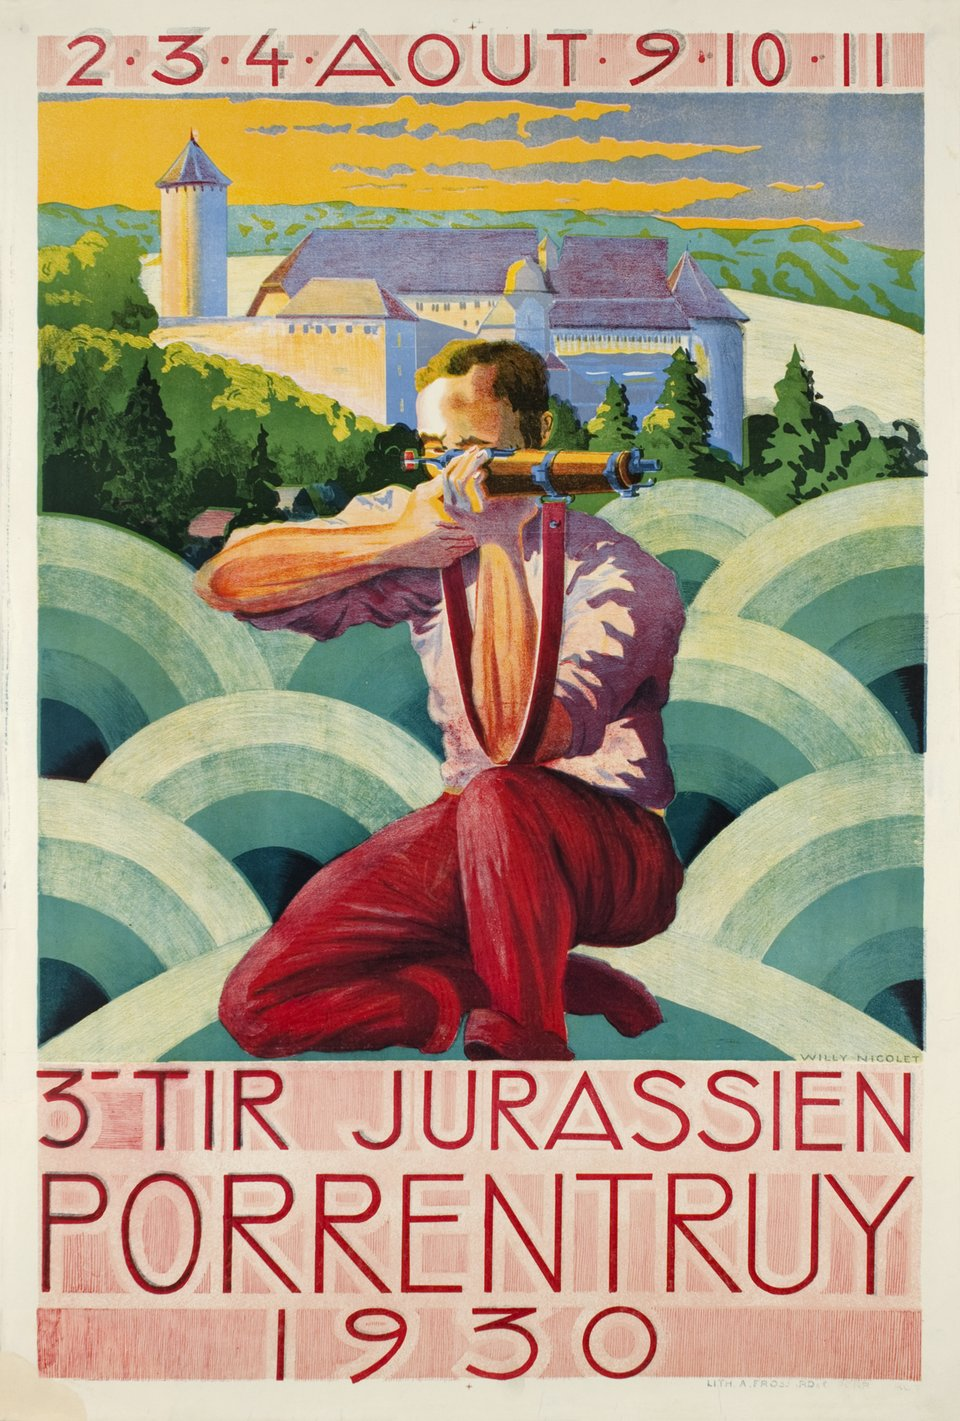 Porrentruy, 3e tir jurassien 1930 – Affiche ancienne – Willy NICOLET – 1930